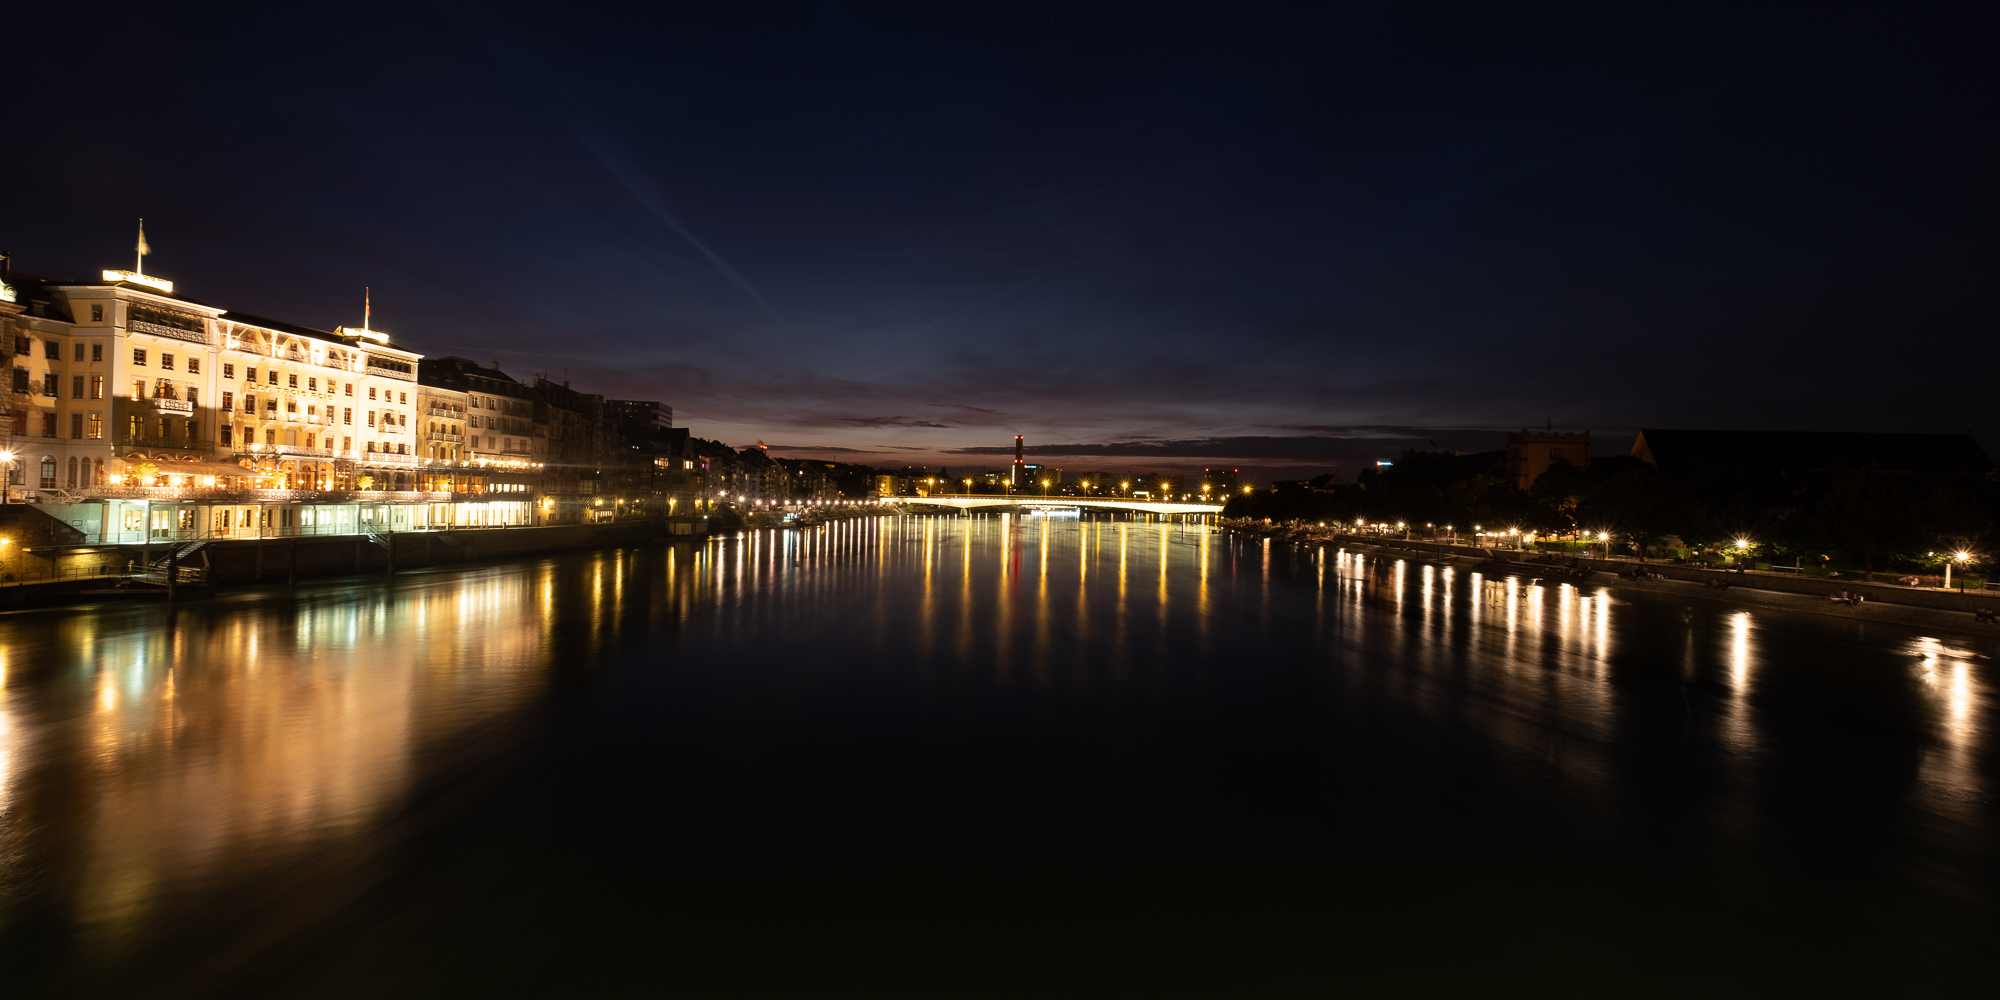 A panorama taken from a bridge over the Rhine at nighttime. There are buildings in the distance lit up and lights reflected in the water.